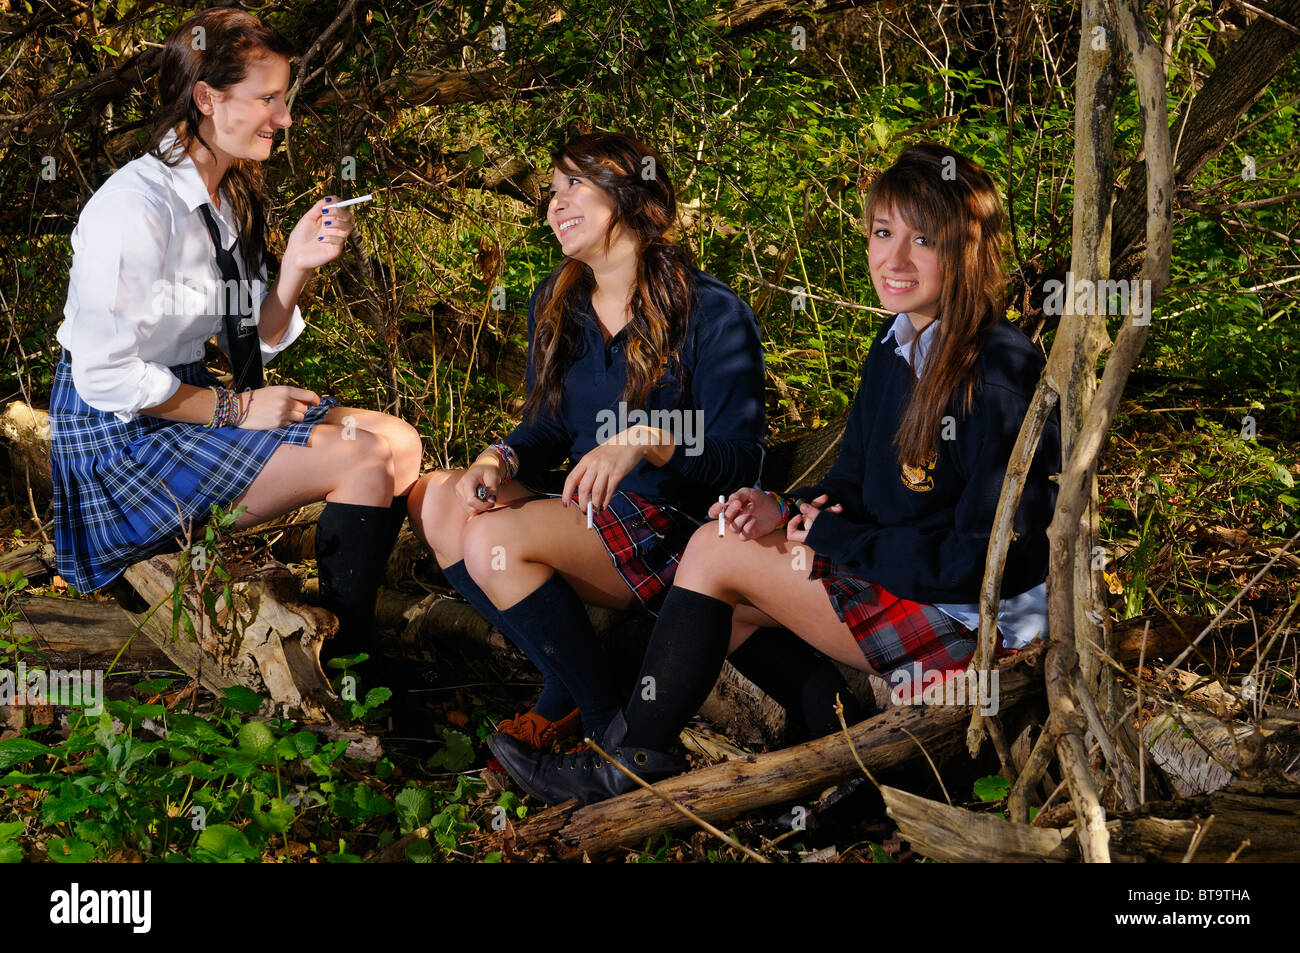 Three teenage girls private school students friends after school hiding in a forest to smoke cigarettes - Stock Image